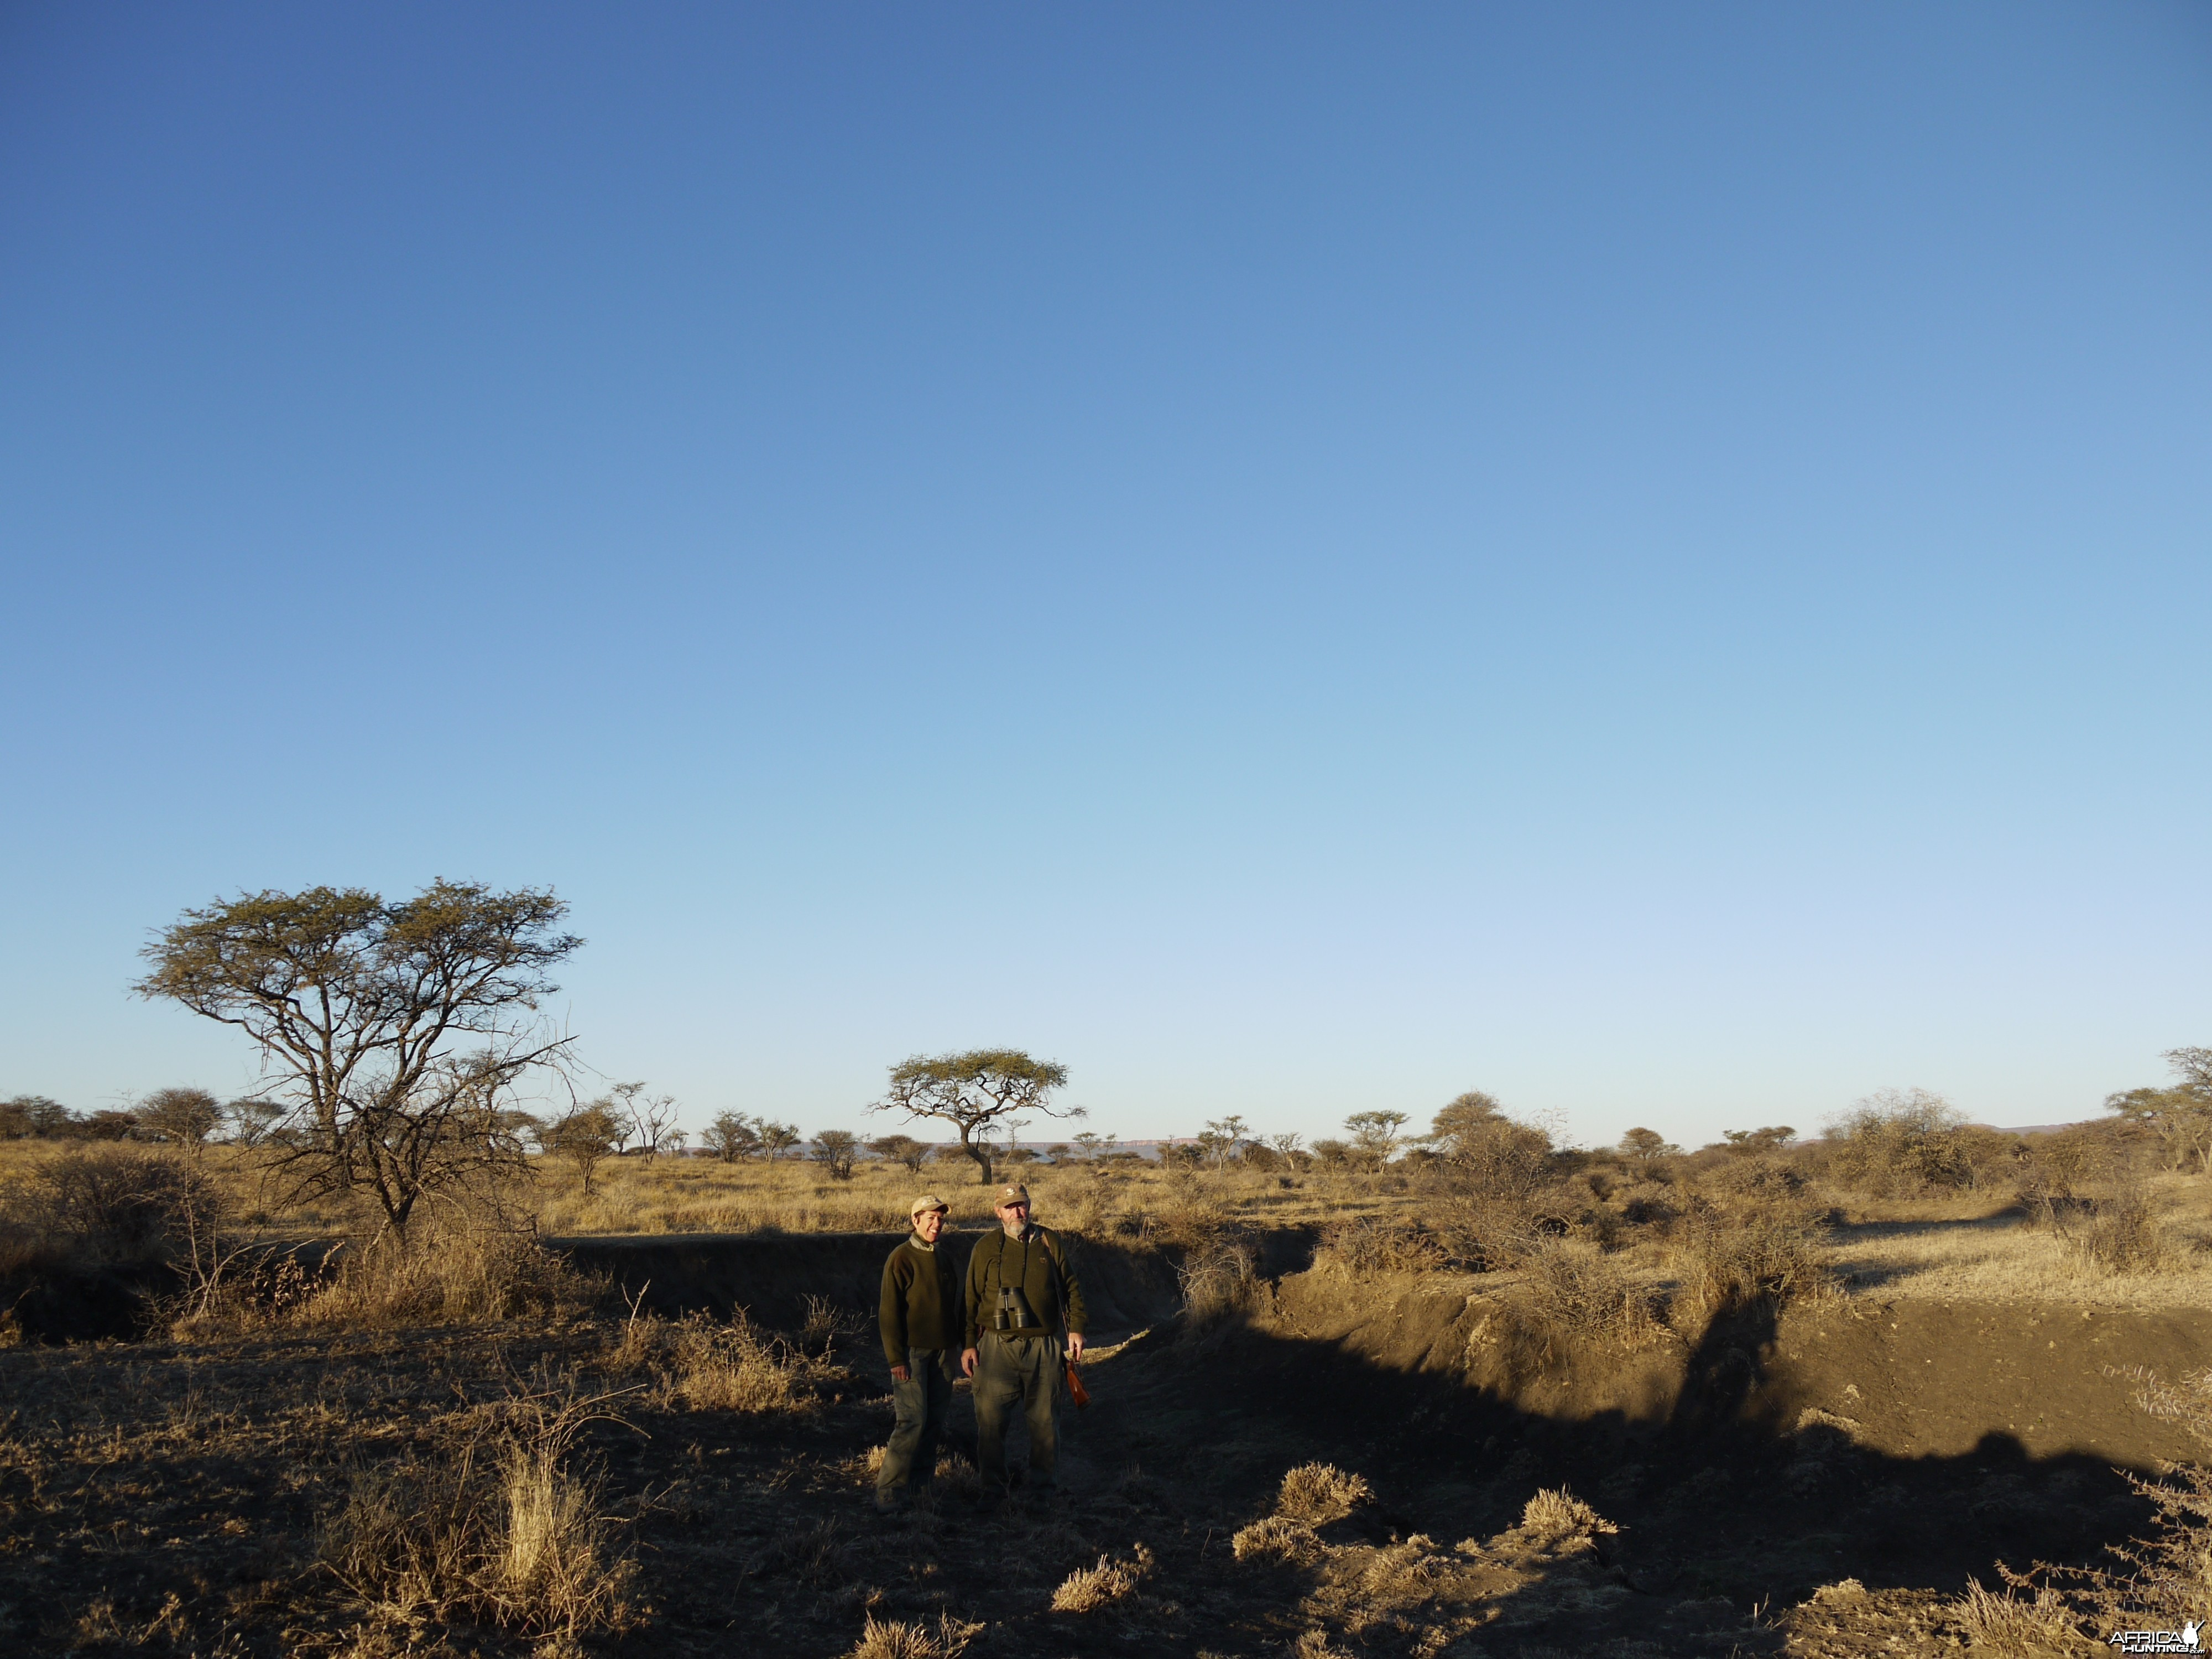 Hunting game in Namibia